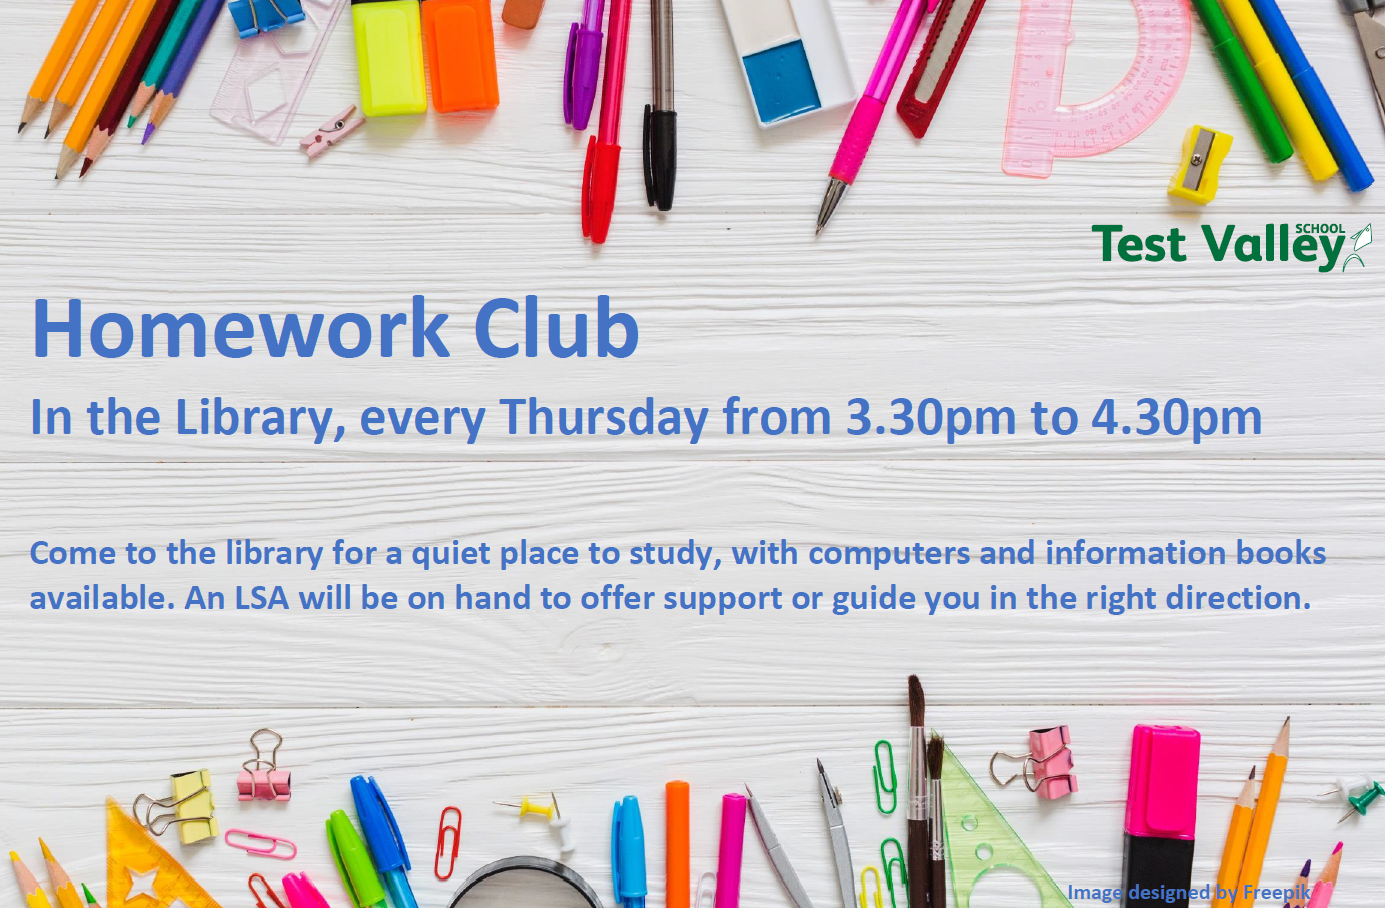 Homework Club every Thursday 3.30 to 4.30pm